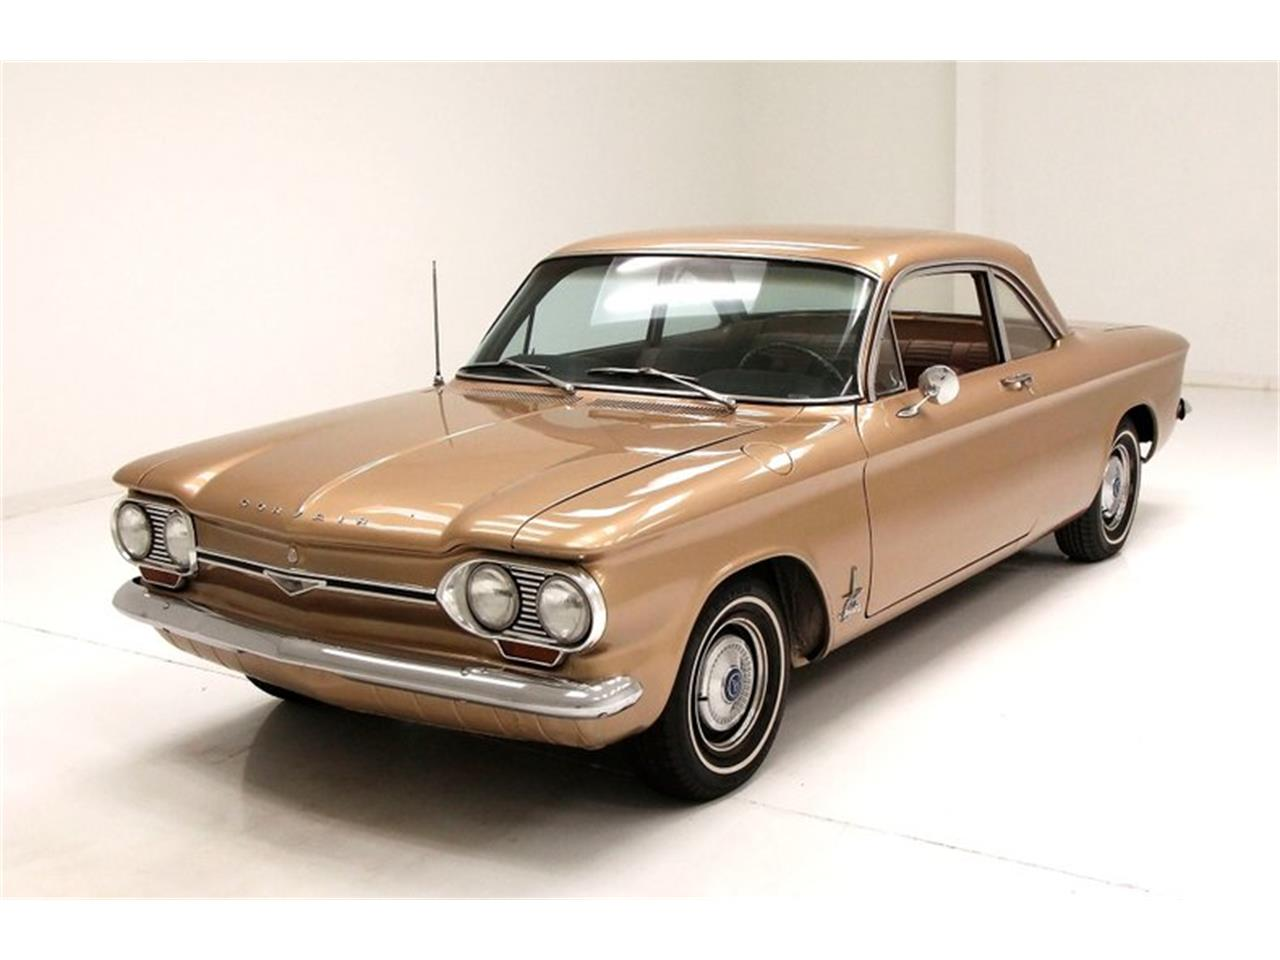 1964 Chevrolet Corvair for sale in Morgantown, PA